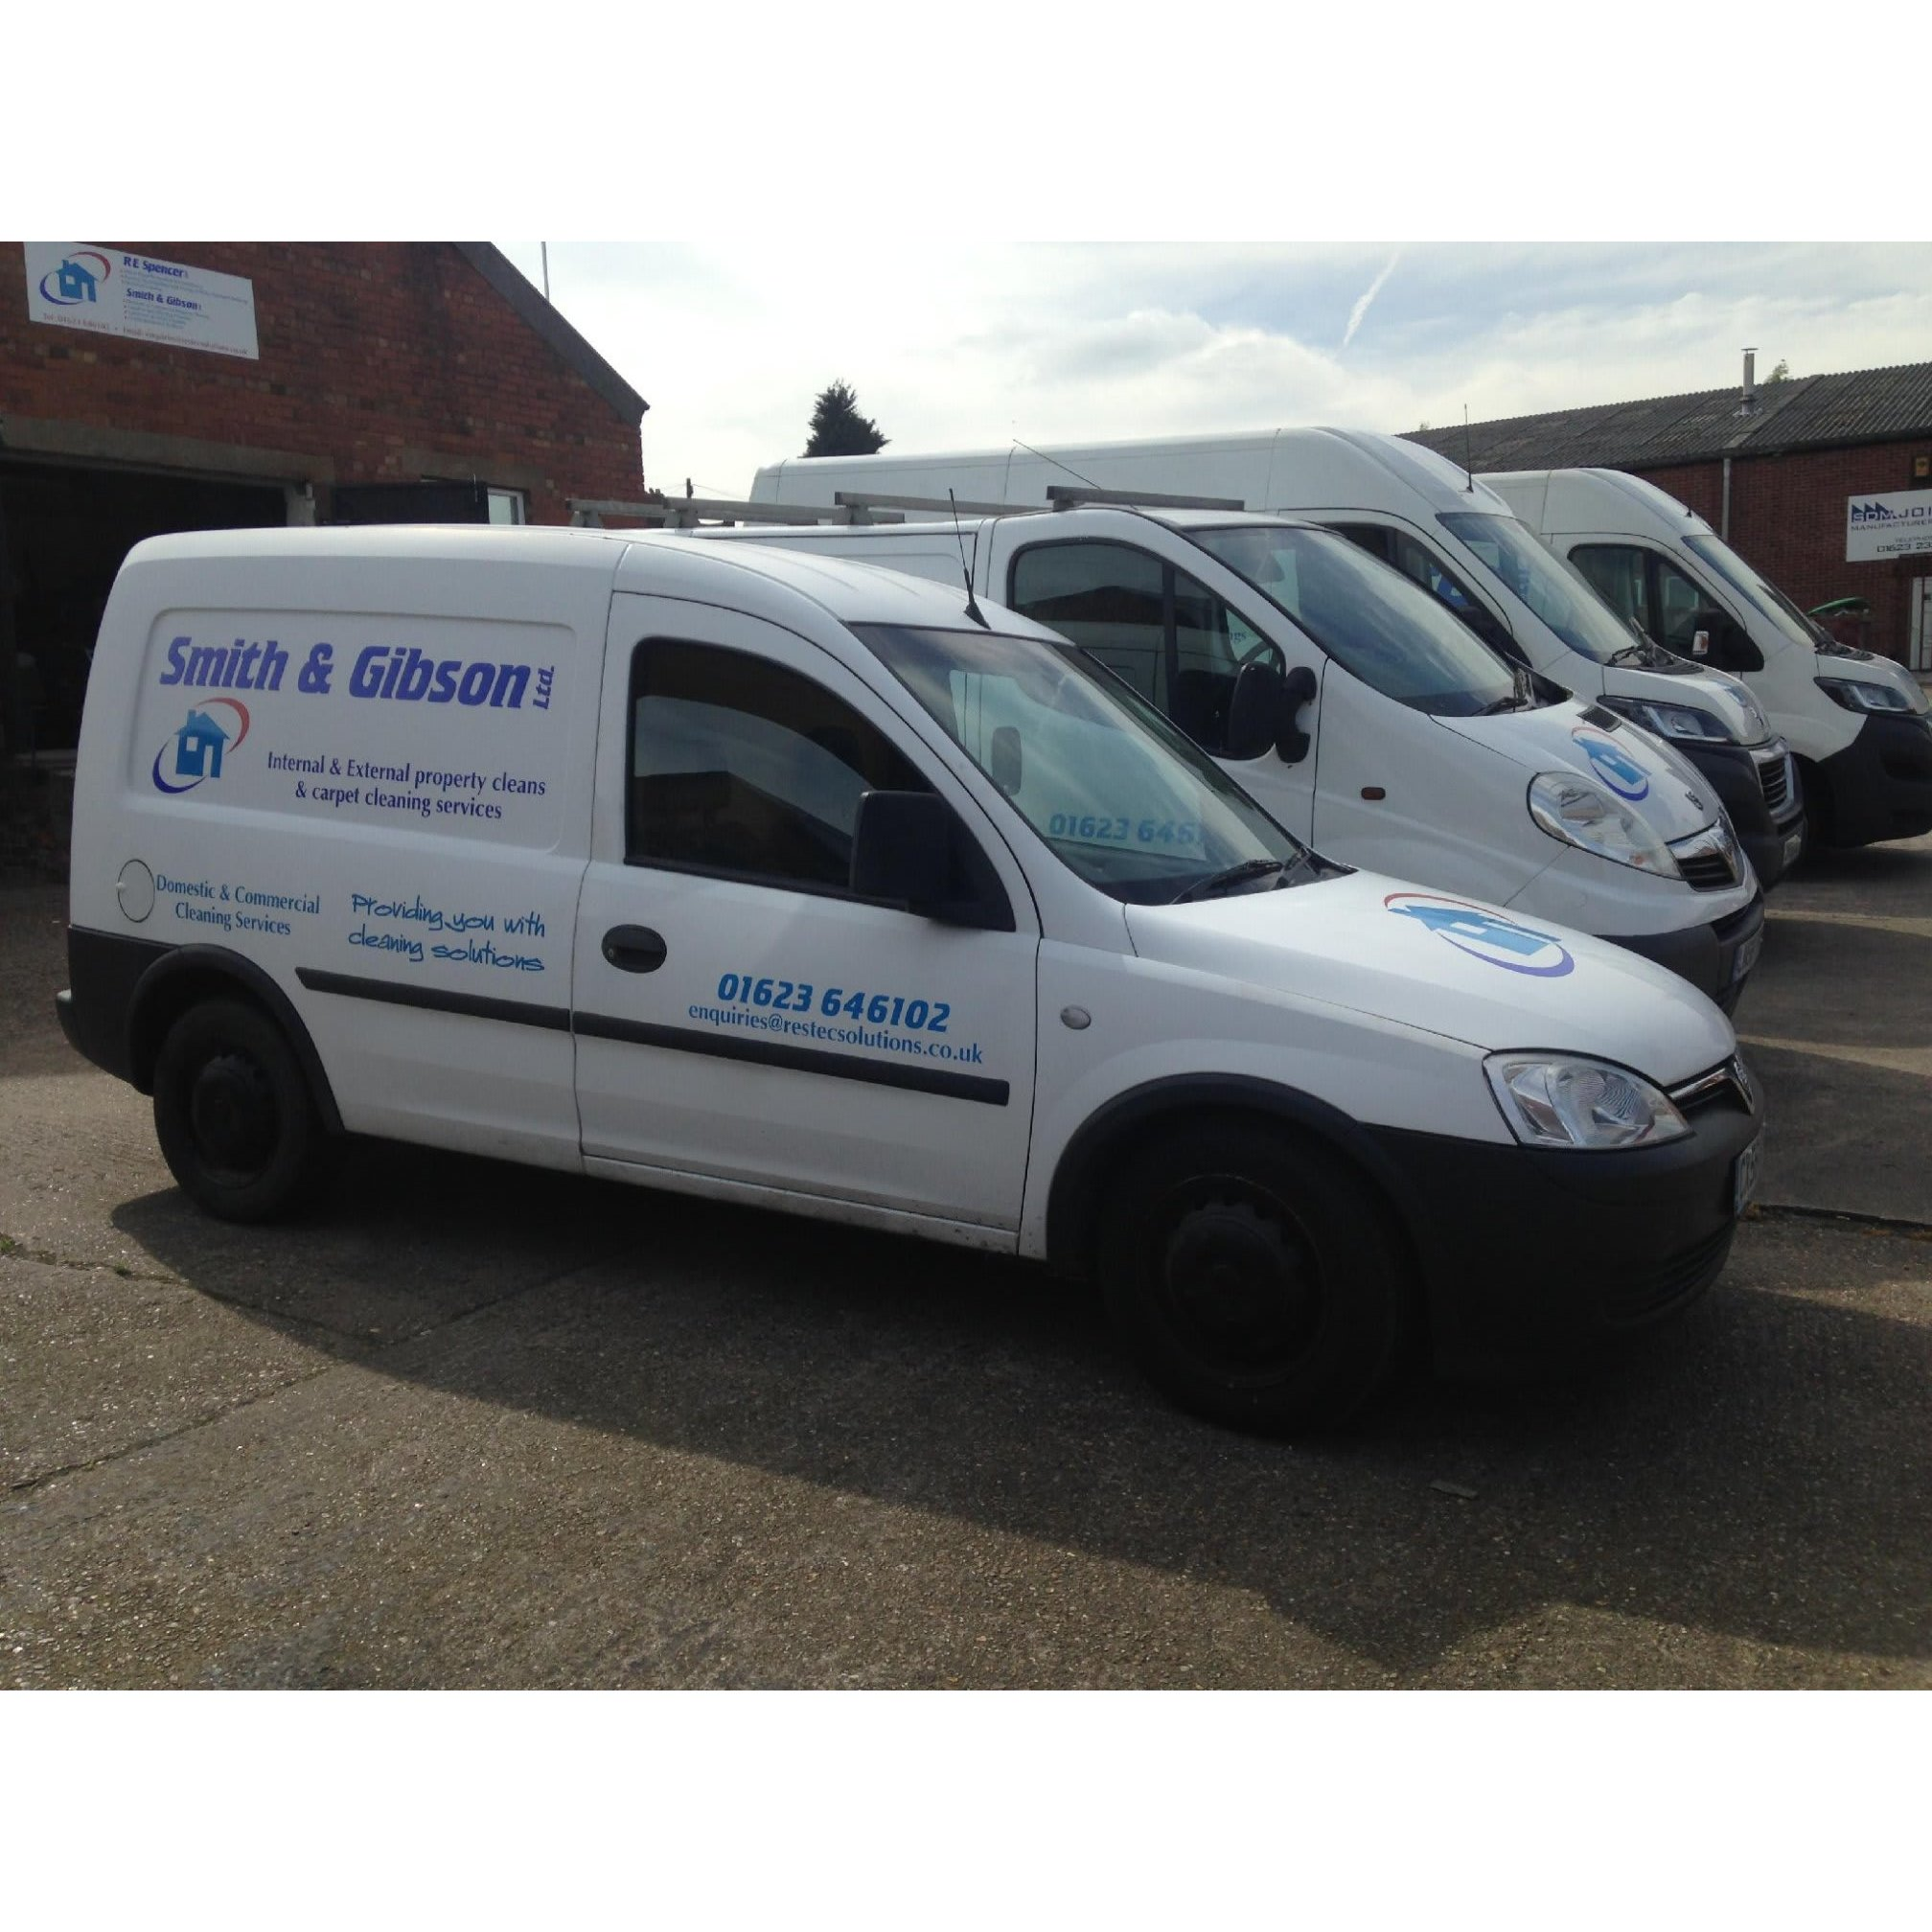 Smith & Gibson Ltd - Mansfield, Nottinghamshire NG18 5QP - 01623 646102 | ShowMeLocal.com